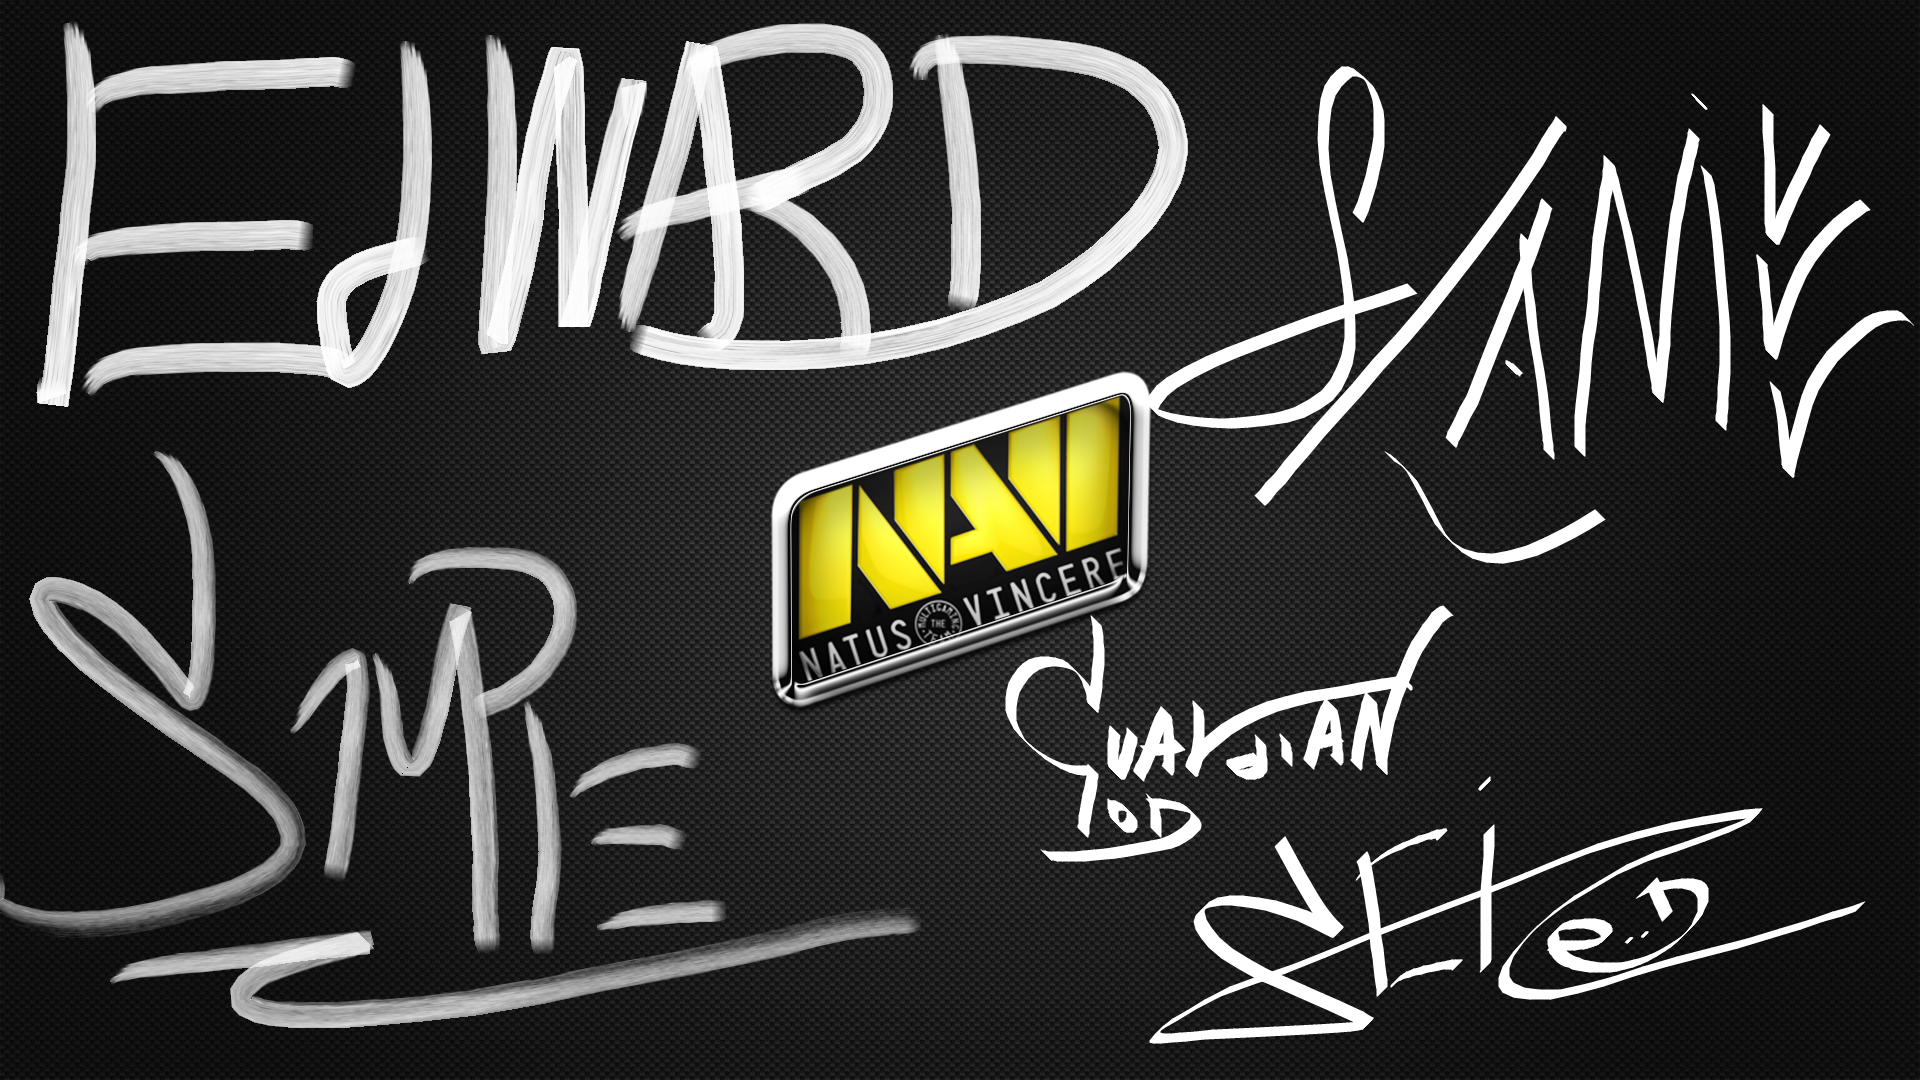 Na'vi autograph by Ronofar (vol.2)